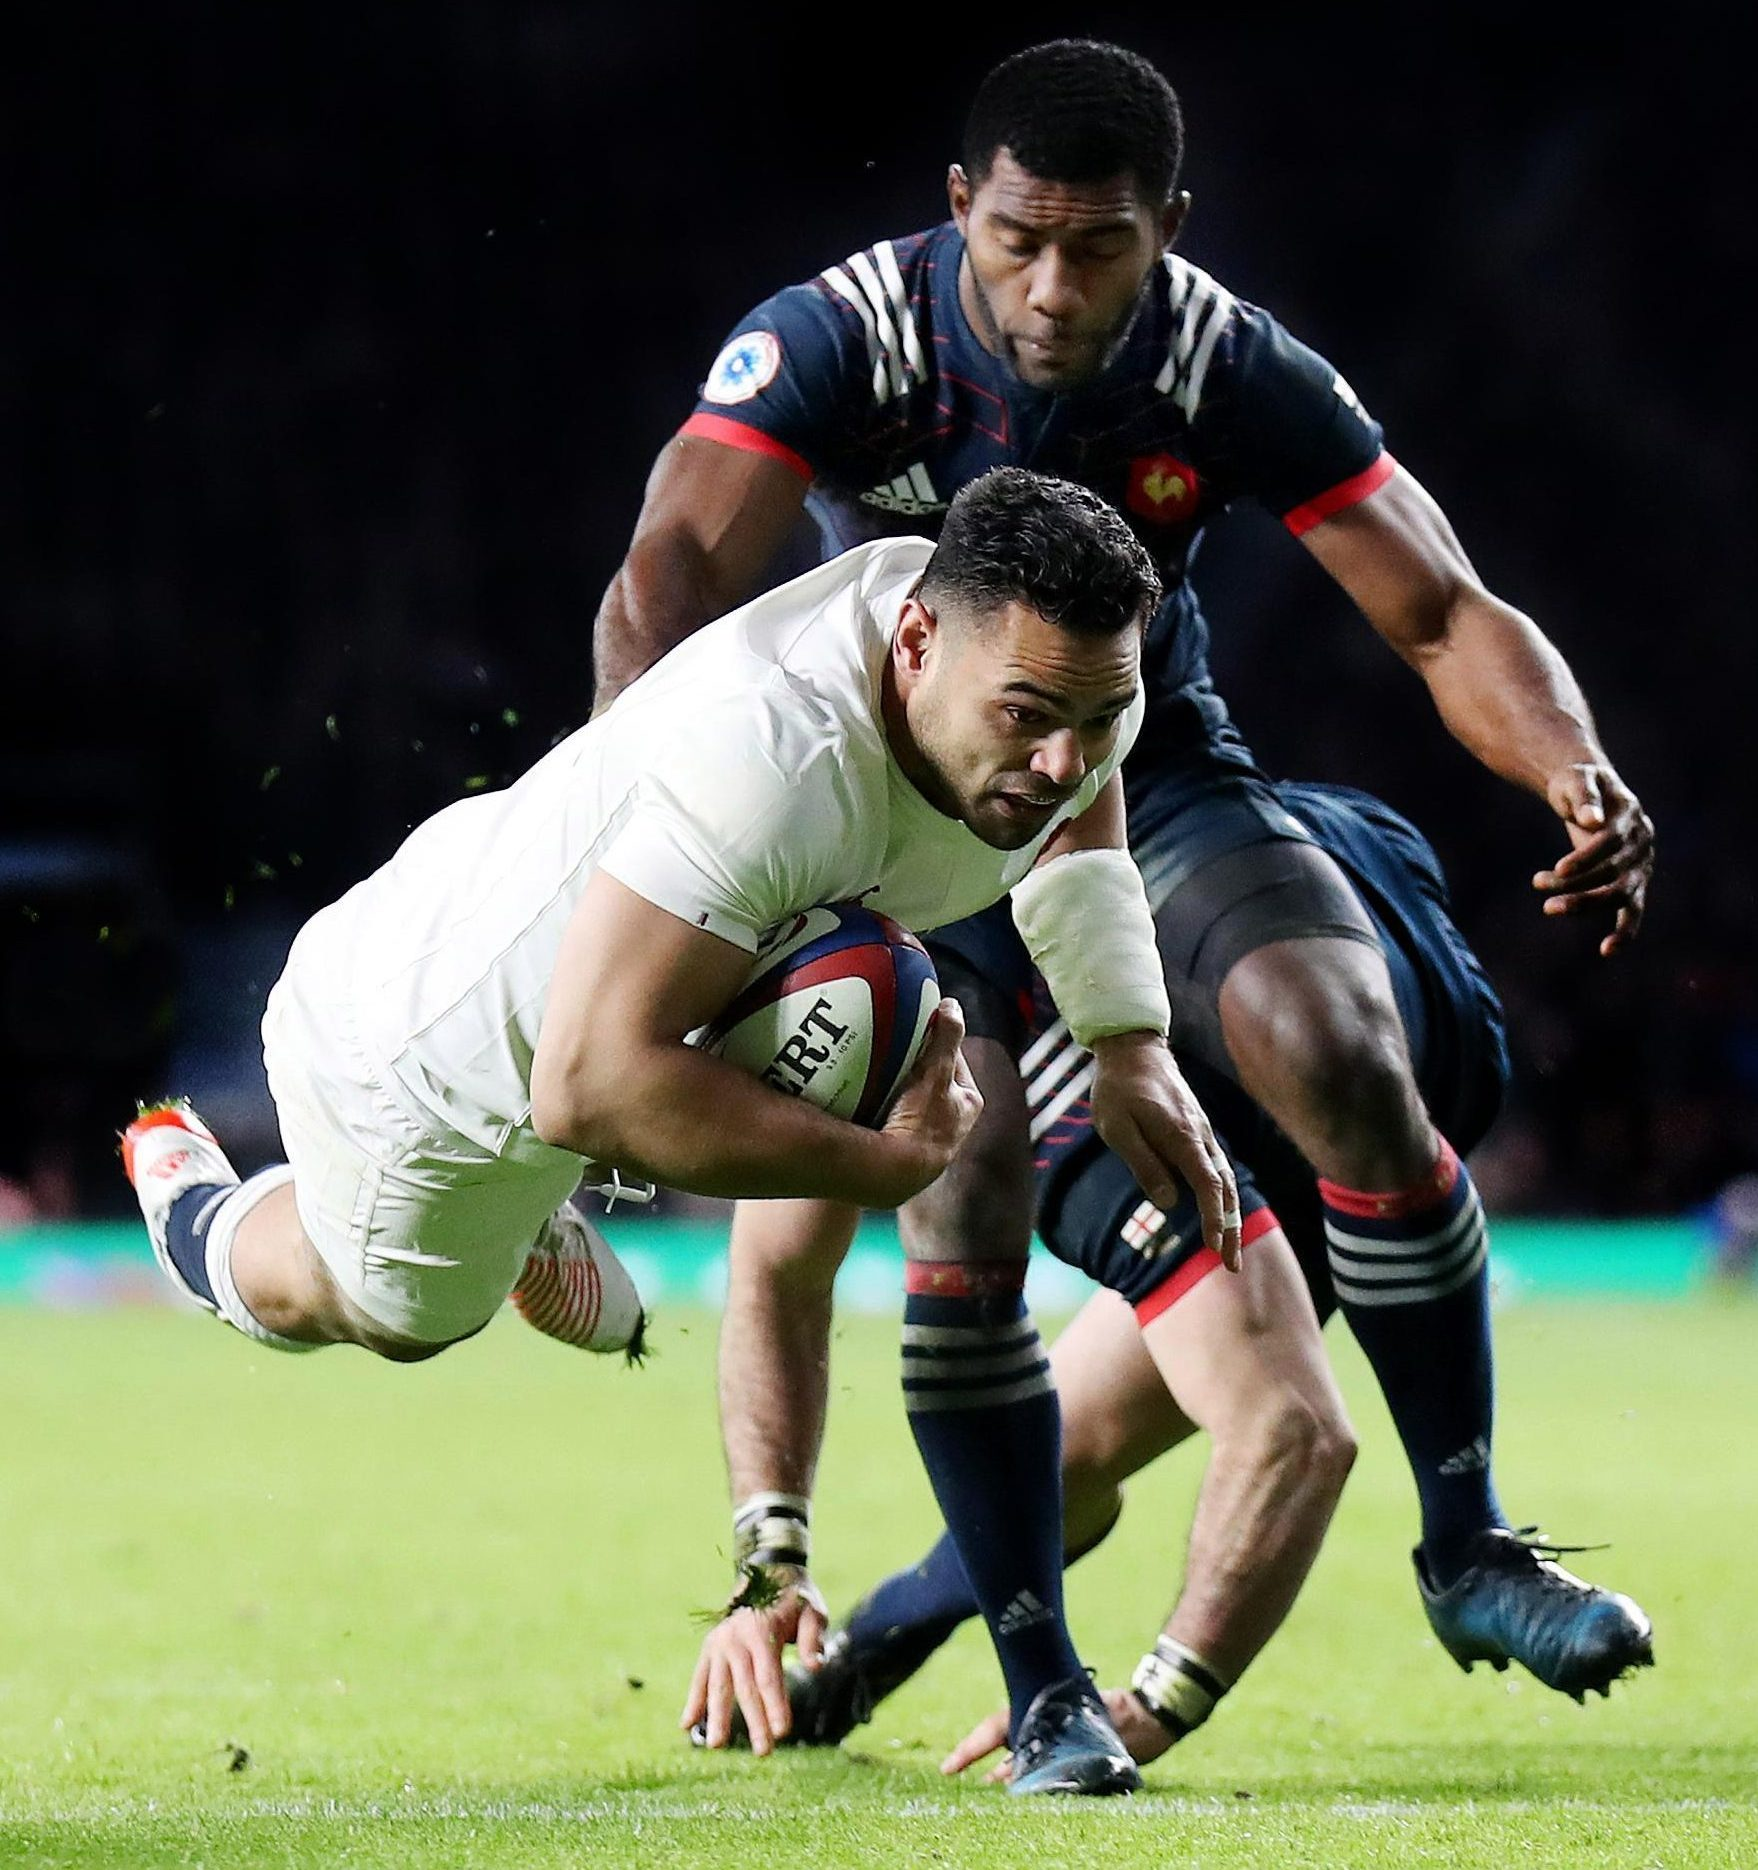 Ben Te'o is targeting a 25th win in 26 games for England under Eddie Jones